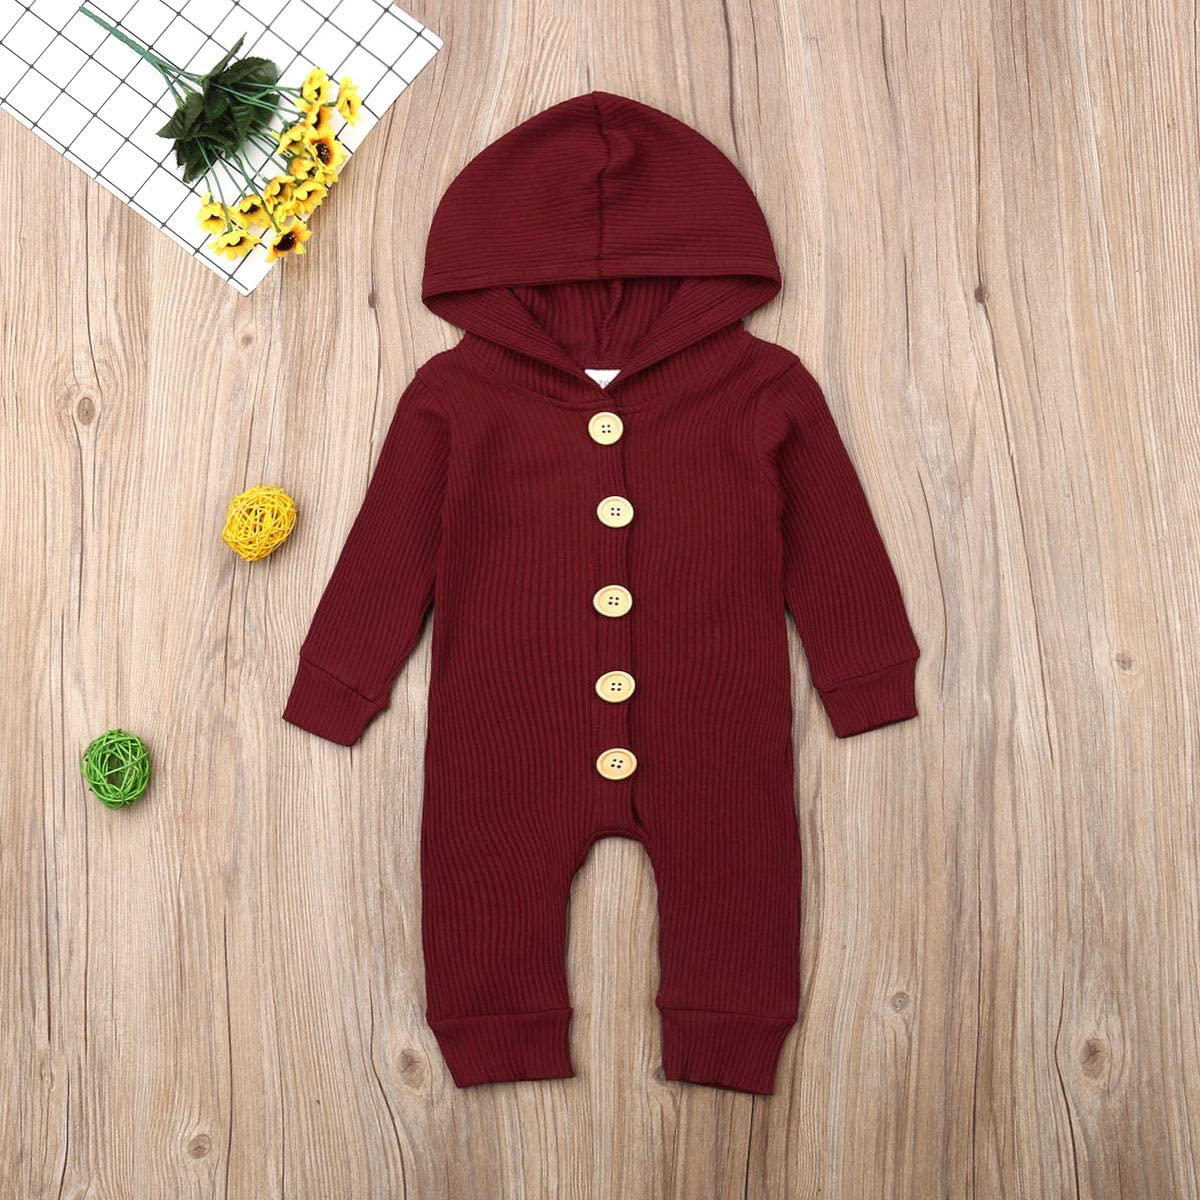 Mistshopy Infant Baby Knit Long Sleeve Romper Boy Girl Hooded Button Jumpsuit One Piece Outfits Clothes